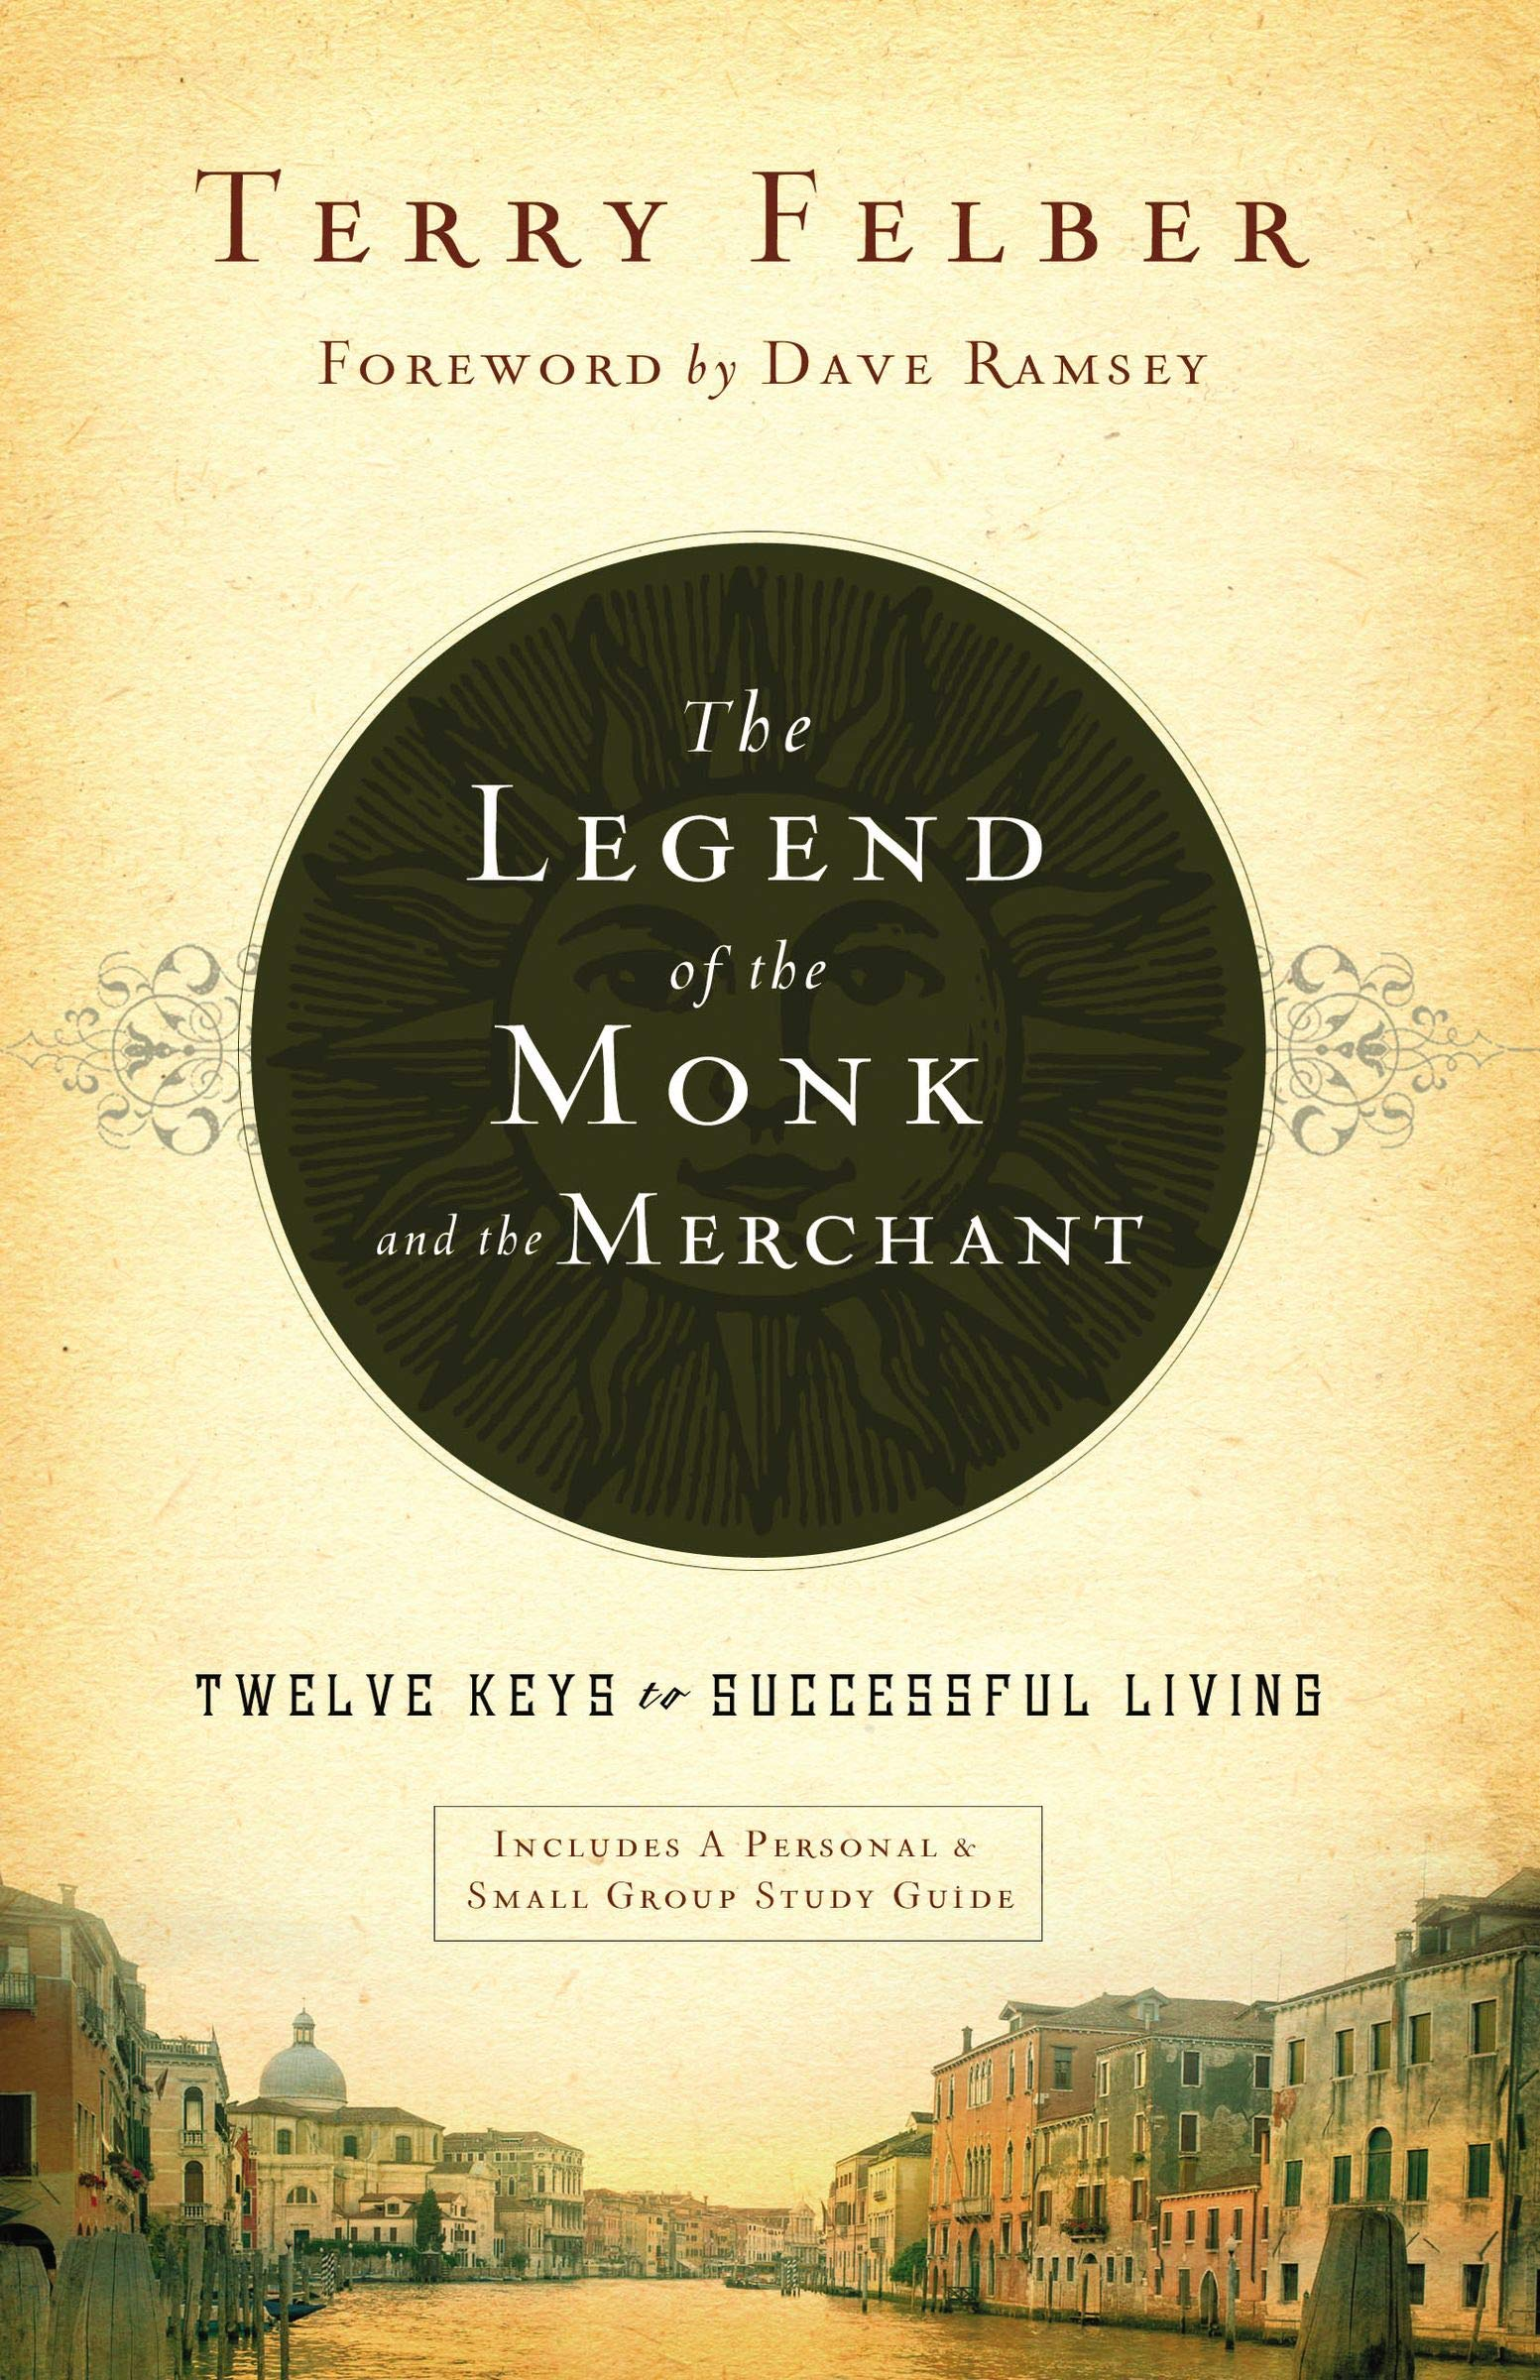 The Legend of the Monk and the Merchant: Twelve Keys to Successful Living:  Terry Felber: 9780849948527: Amazon.com: Books